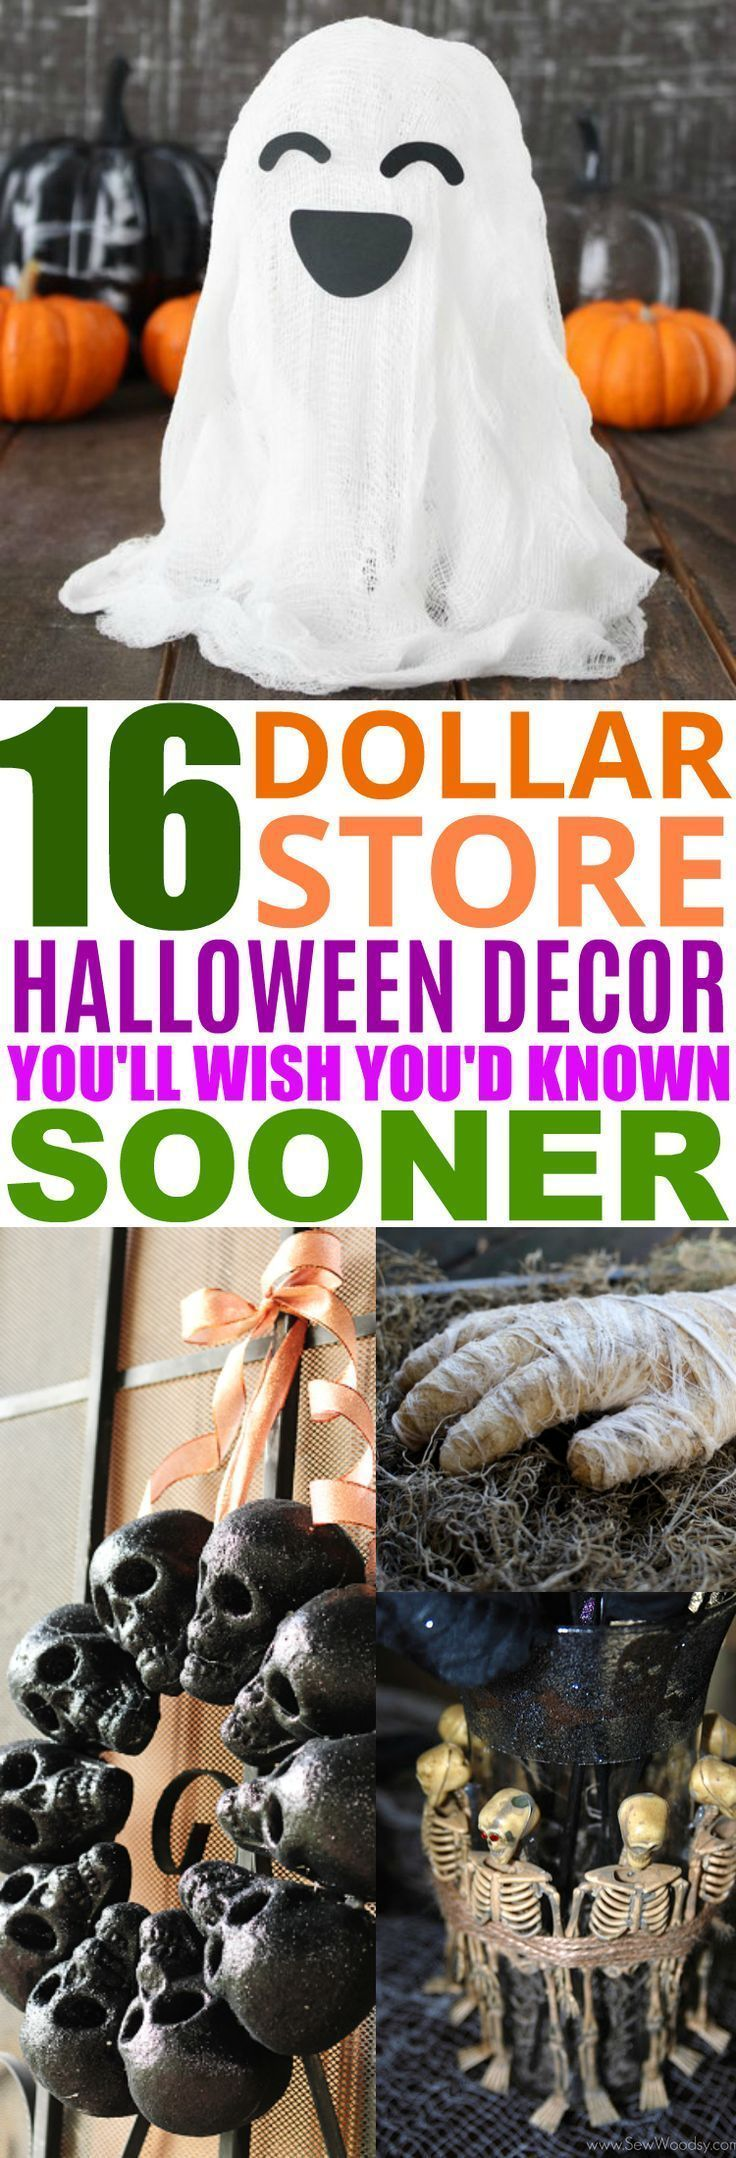 Photo of 16 Dollar Store Halloween Decor DIY Ideas That Look Expensive